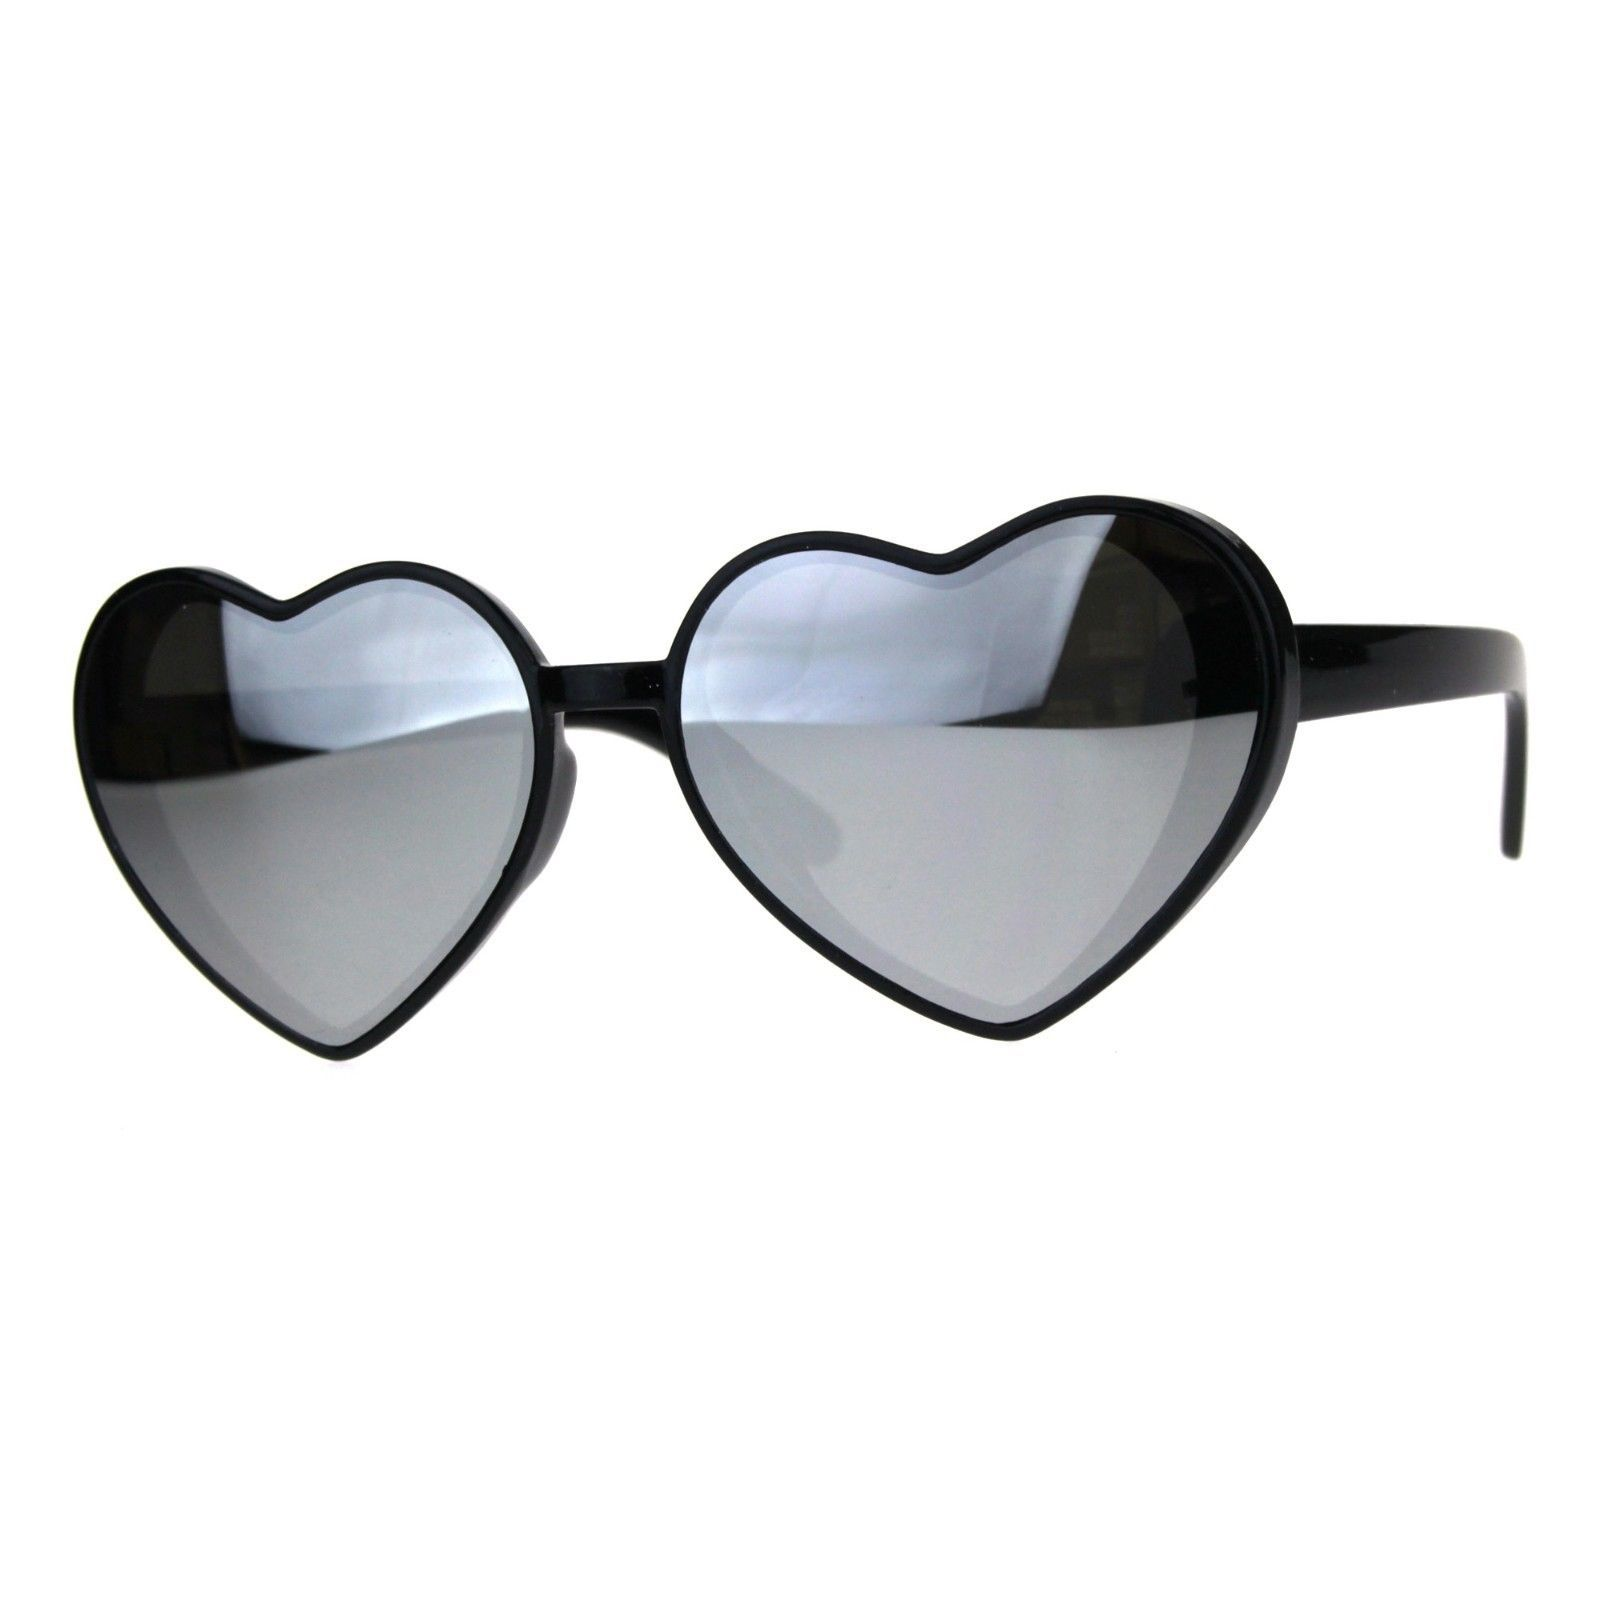 Oversized Heart Shape Sunglasses Womens Fashion Mirrored Lens Shades image 5